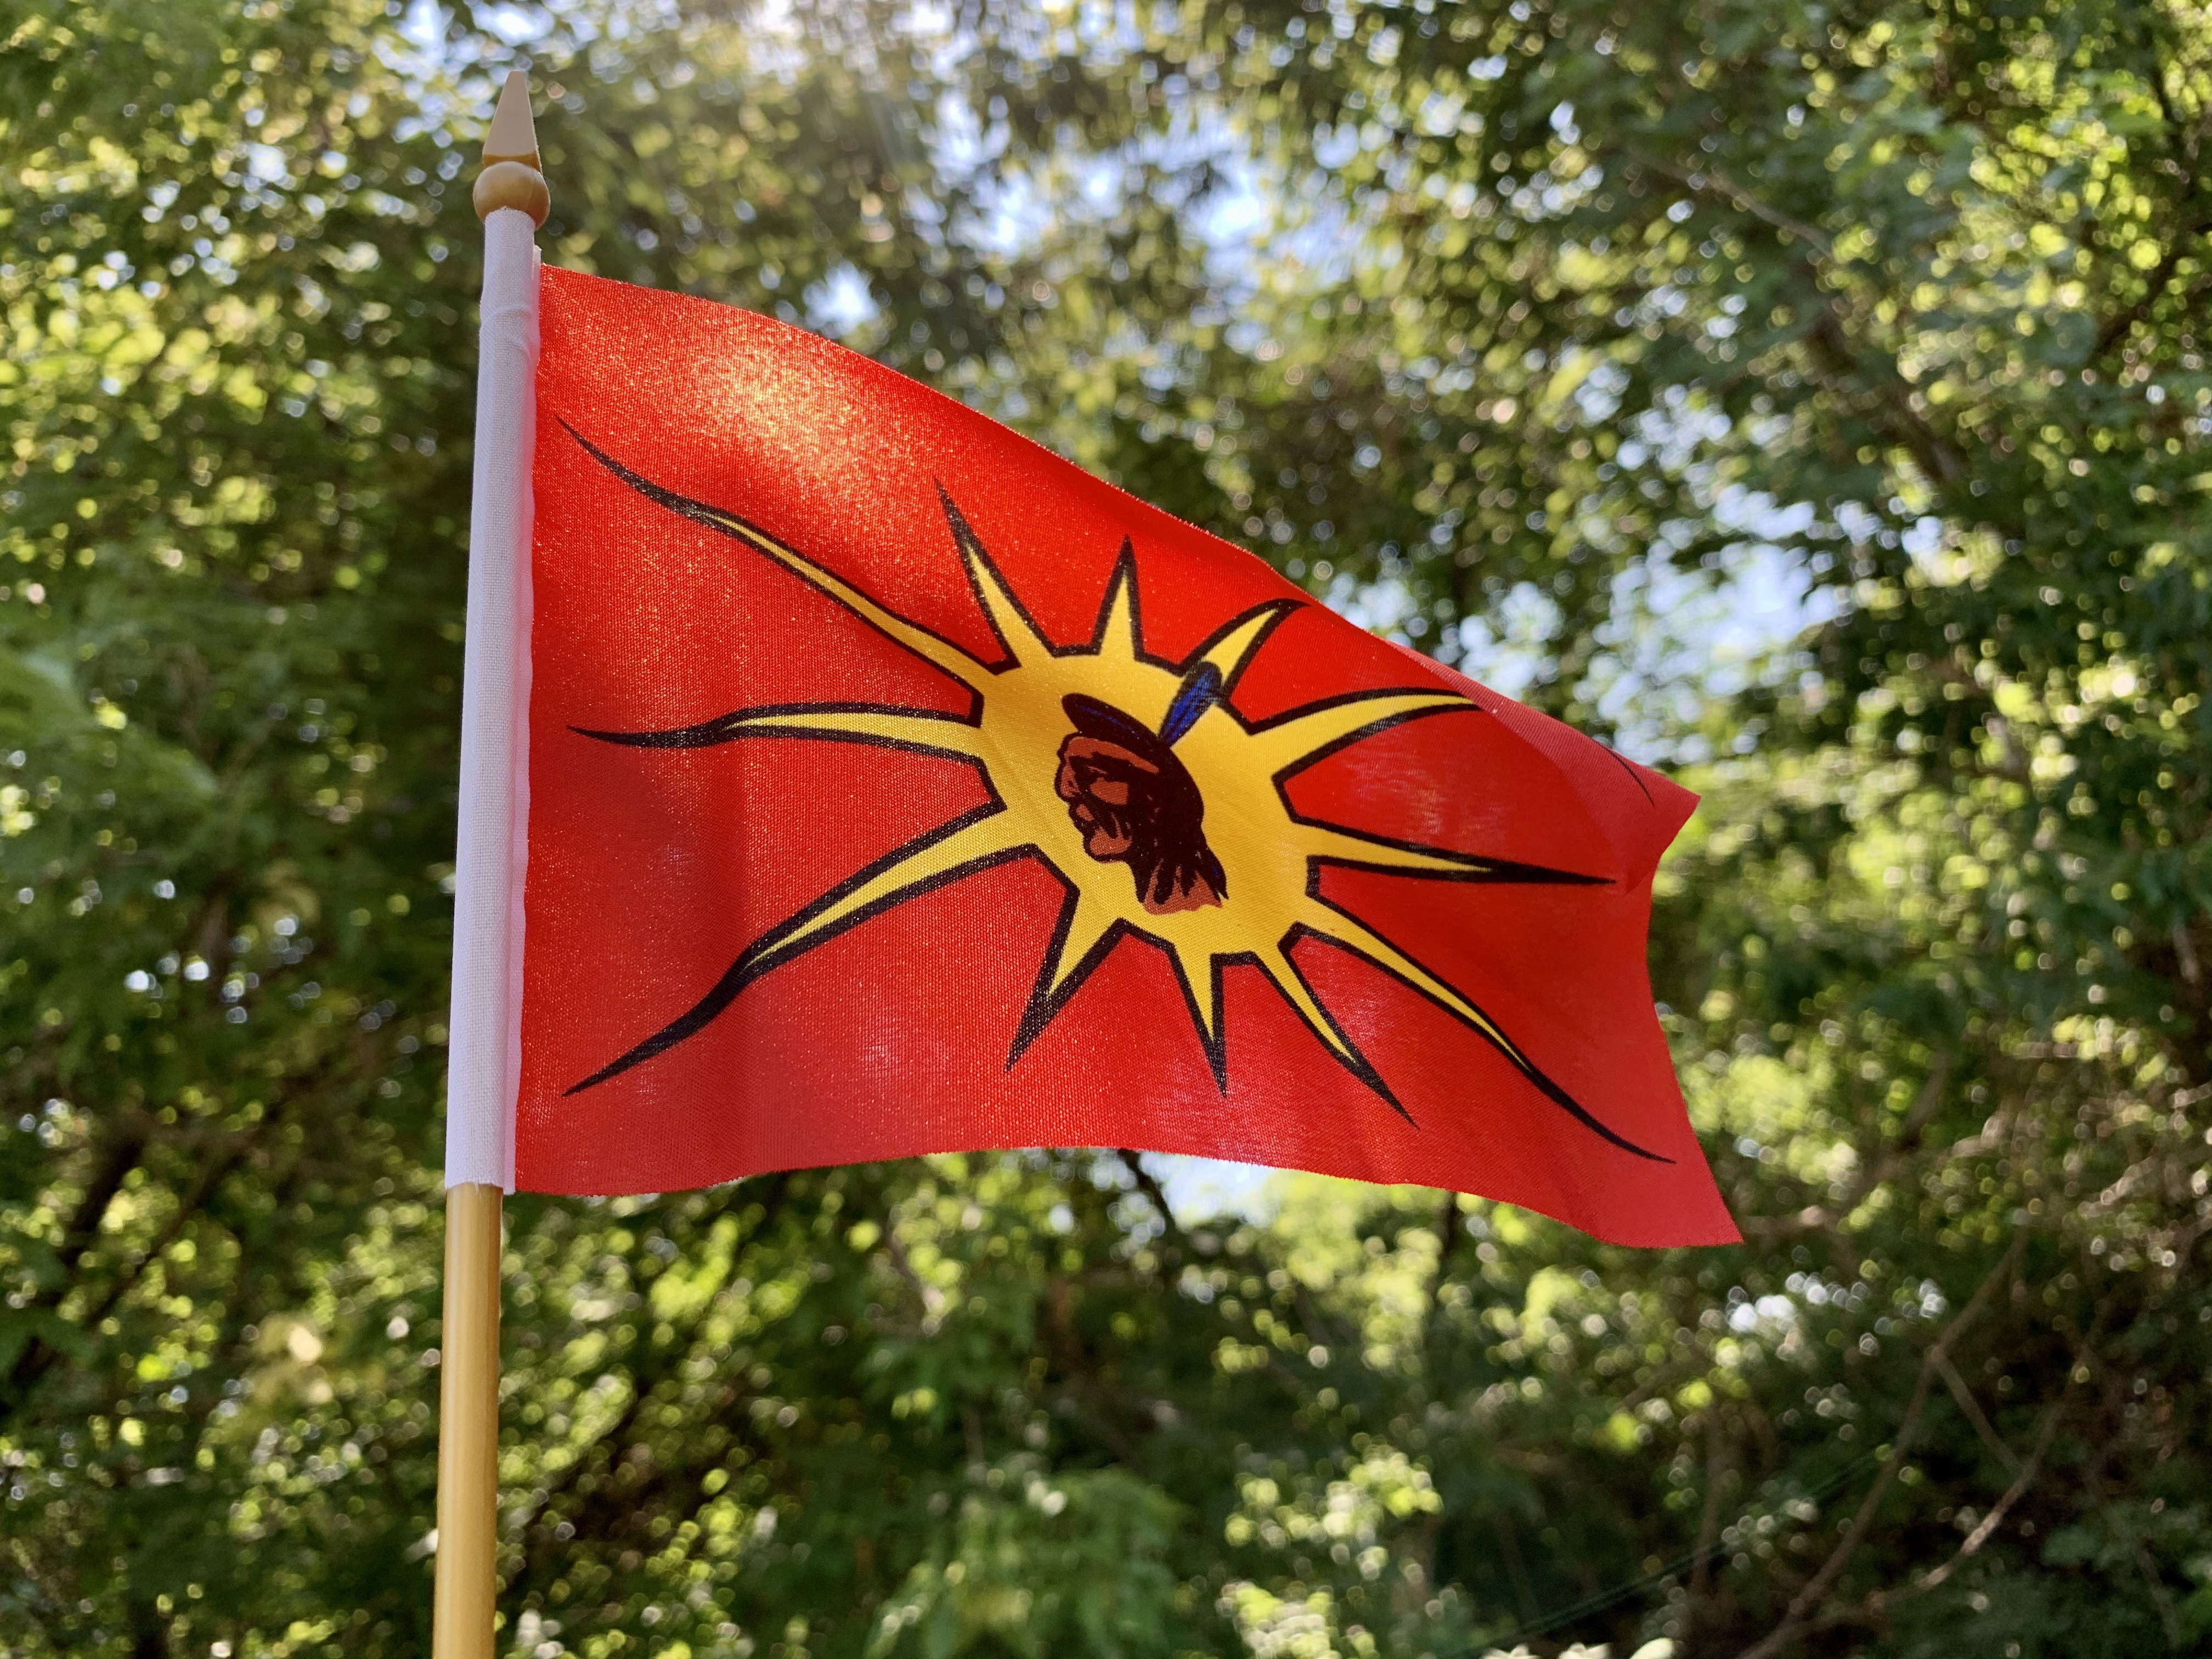 The warrior flag, also known as the unity flag, was created by Kanien'kehà:ka (Mohawk) artist Karoniaktajeh Louis Hall. (Jessica Deer/CBC)